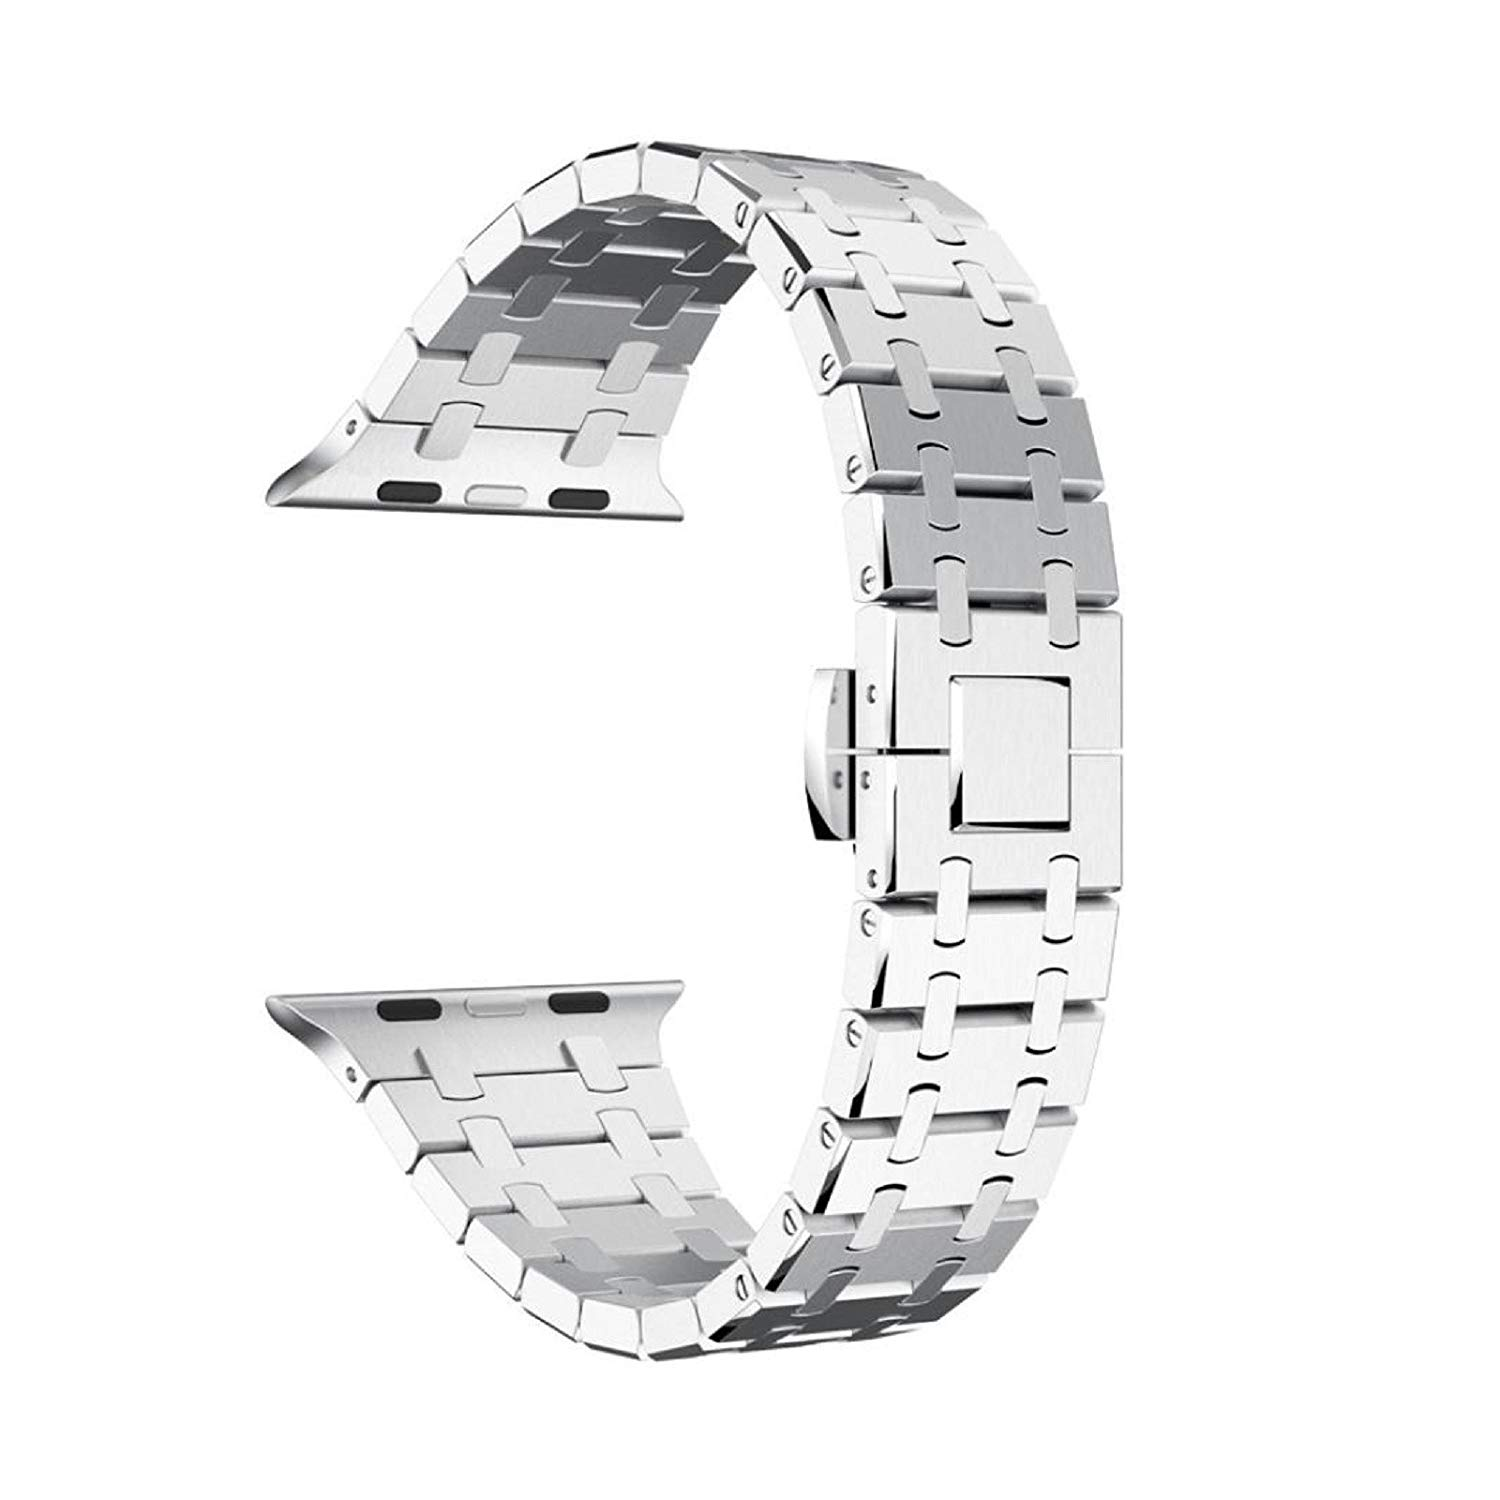 Owill Luxury Genuine Stainless Steel Watch Bracelet Band Strap For Apple Watch Series 1/2 42MM Watch, Fits Wrist 135-195mm (Silver)